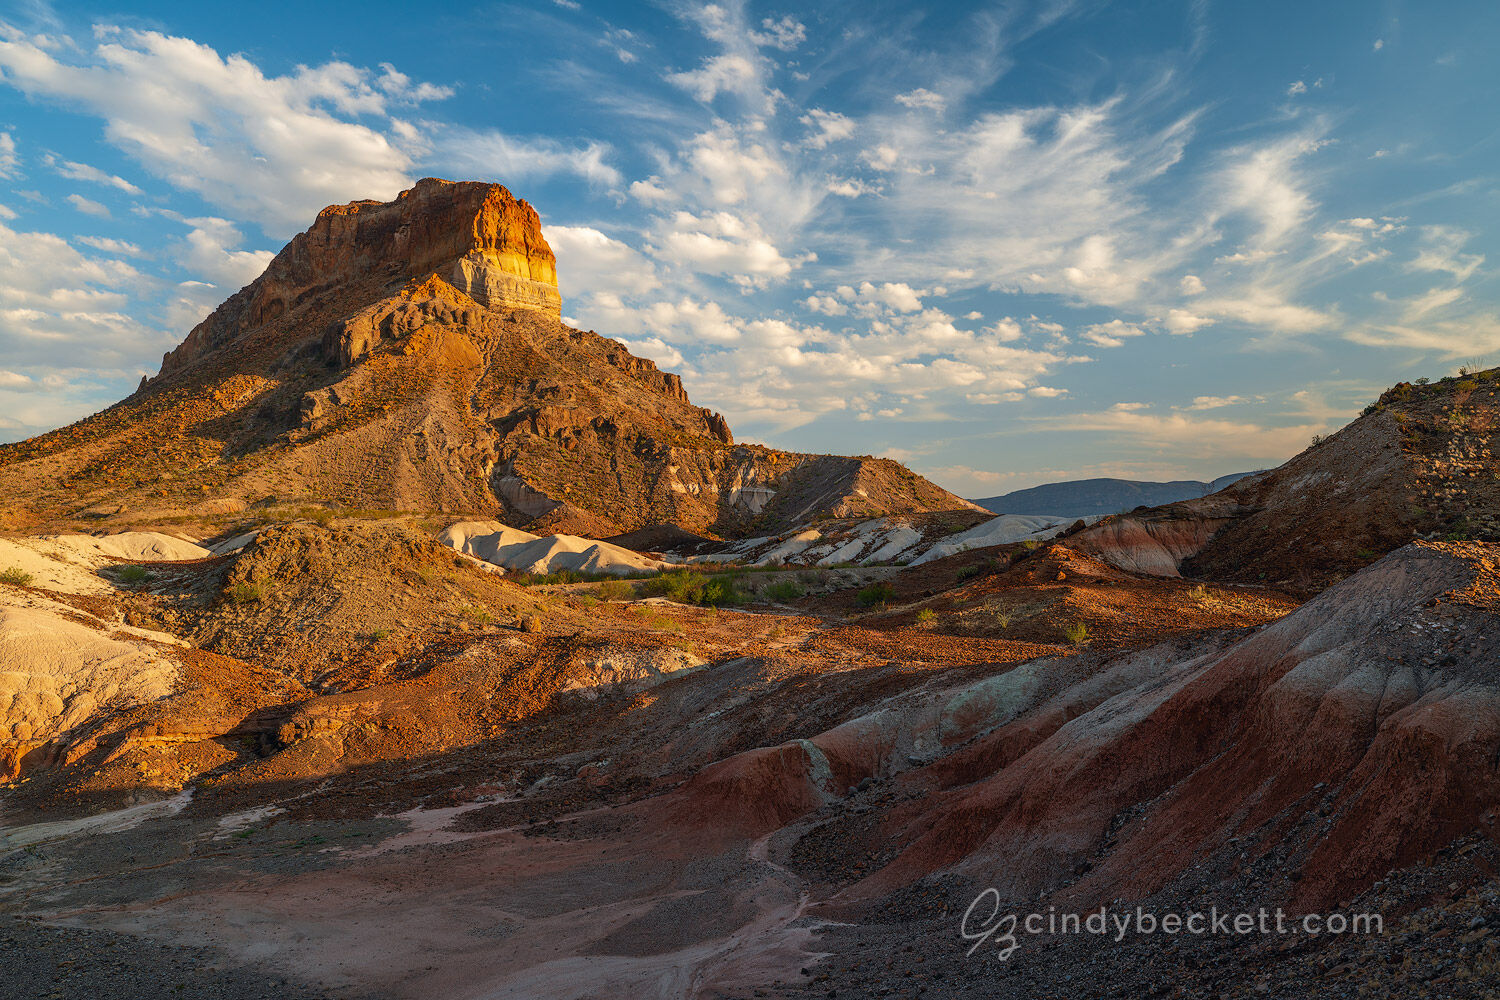 Cerro Castellan peak, an ancient volcanic formation, rises above Tuff Canyon an area with beautiful colors and fascinating geology in Big Bend National Park